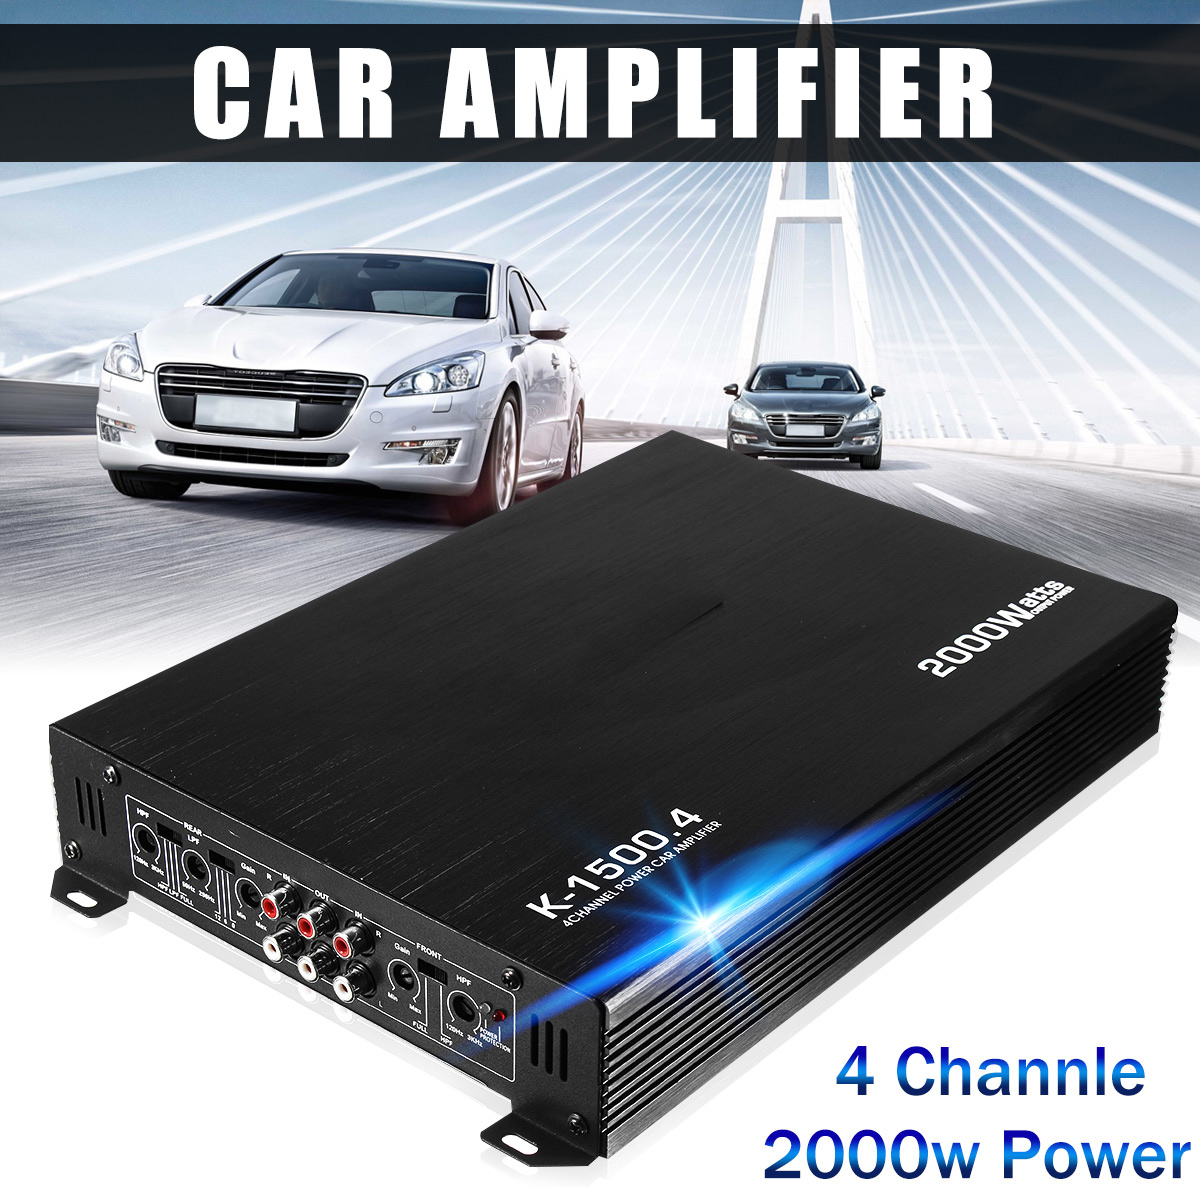 2000W 4 Channel Car Amplifier Speaker Vehicle Auto Audio Amplifier Power Stereo Amp Auto Audio Power Amplifier Player DC 12V black 12v car amplifier high power 1900w audio 4 channel 4 way amplifiers booster auto free shipping dropping